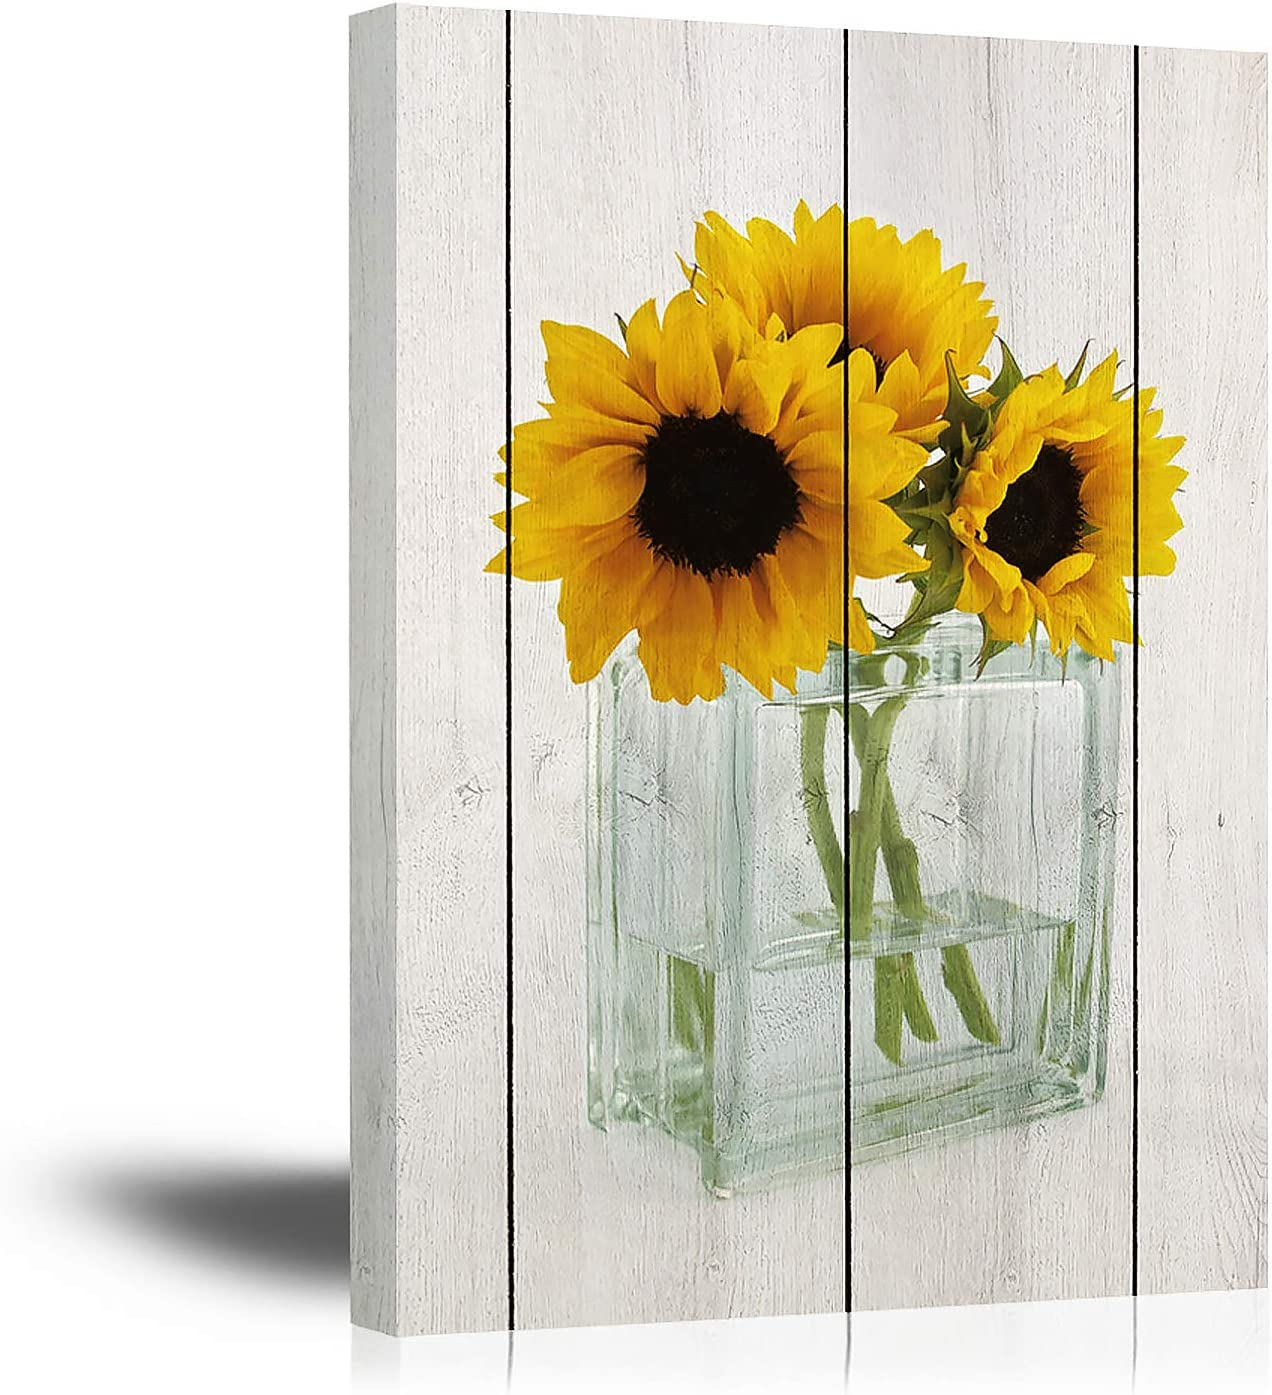 Sunflowers Canvas Wall Art for Bathroom Wall Decor 12X16Inch Yellow Flowers Wall Decoration Painting Prints for Bedroom with Wood Frame Botanical Florals in Transparency Bottle with Bright Wood Grain Background (12Wx16L)